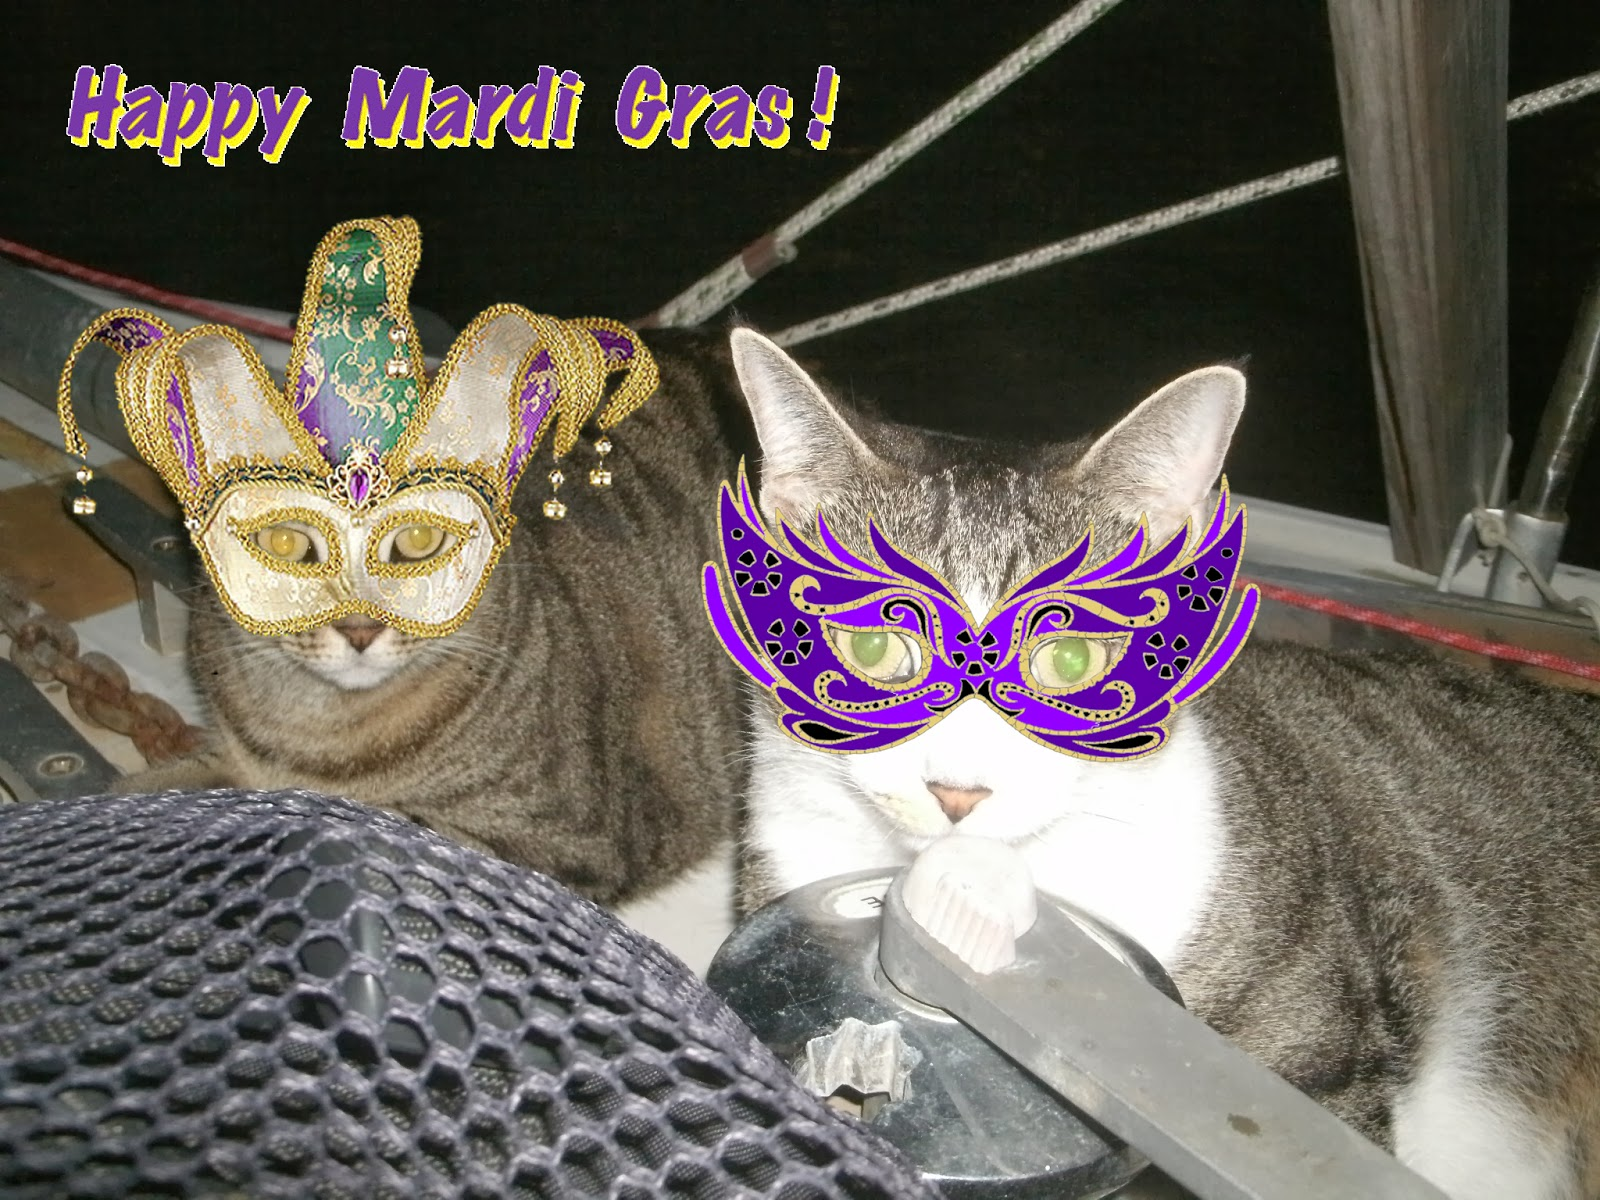 Ask for permission - mardi gras cats paradiseconnections.com